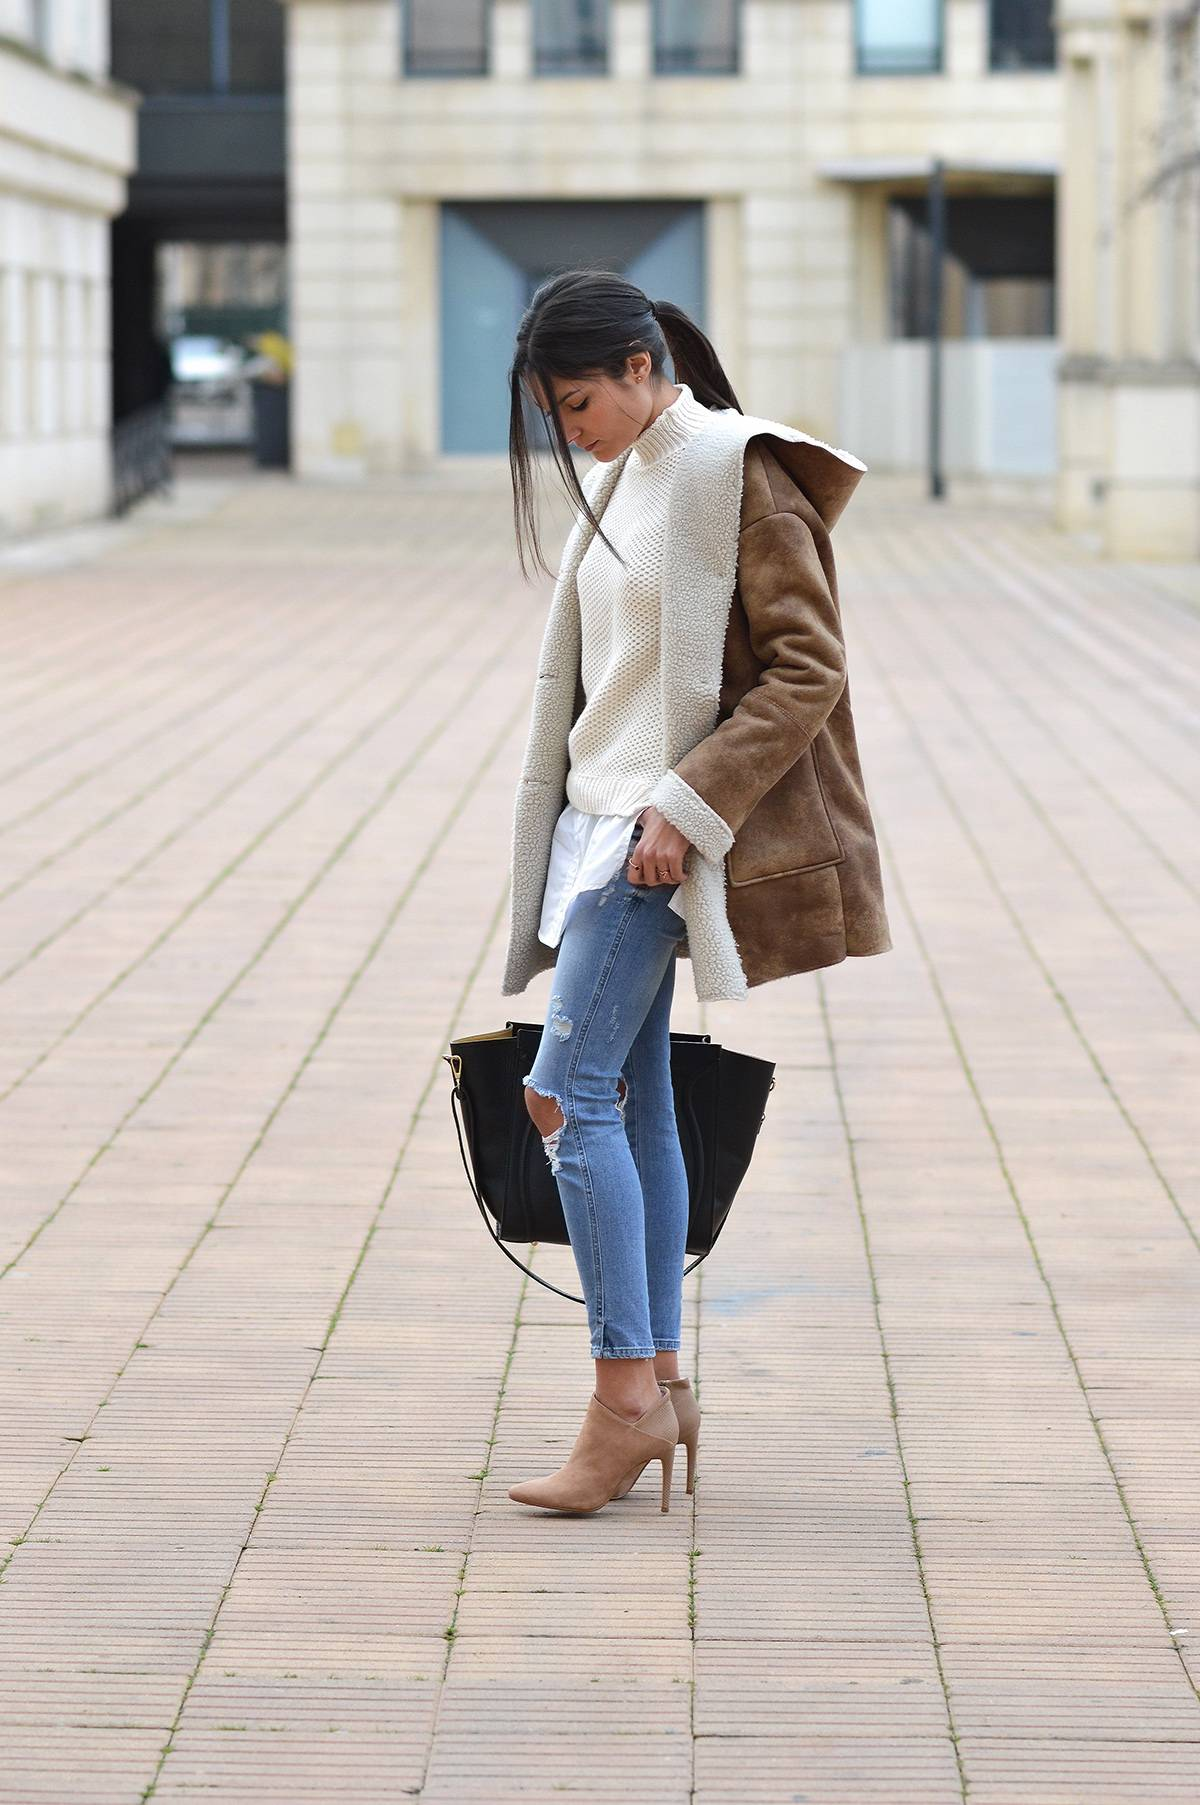 Federica L. combines the shearling and distressed jeans trend here, creating a chic winter aesthetic which you should try! Pair the look with nude heels and a black leather bag to get this style yourself. Coat: Mango, Jeans: Zara, Boots: Espirit, Bag: The Archiduchess.